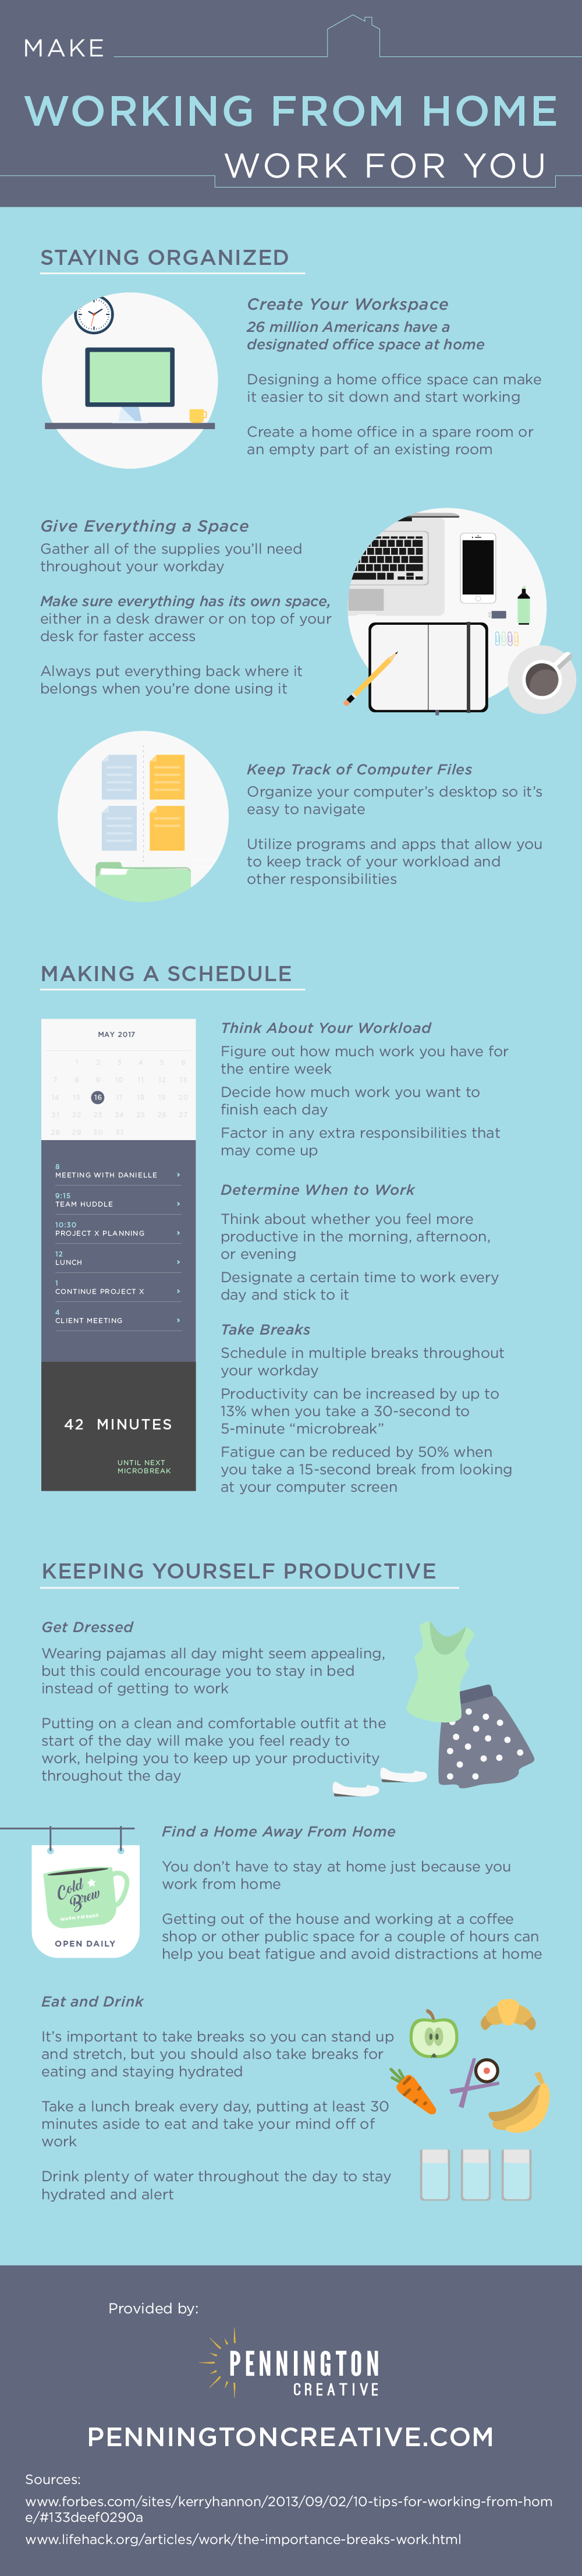 Make Working from Home Work for You - #infographic